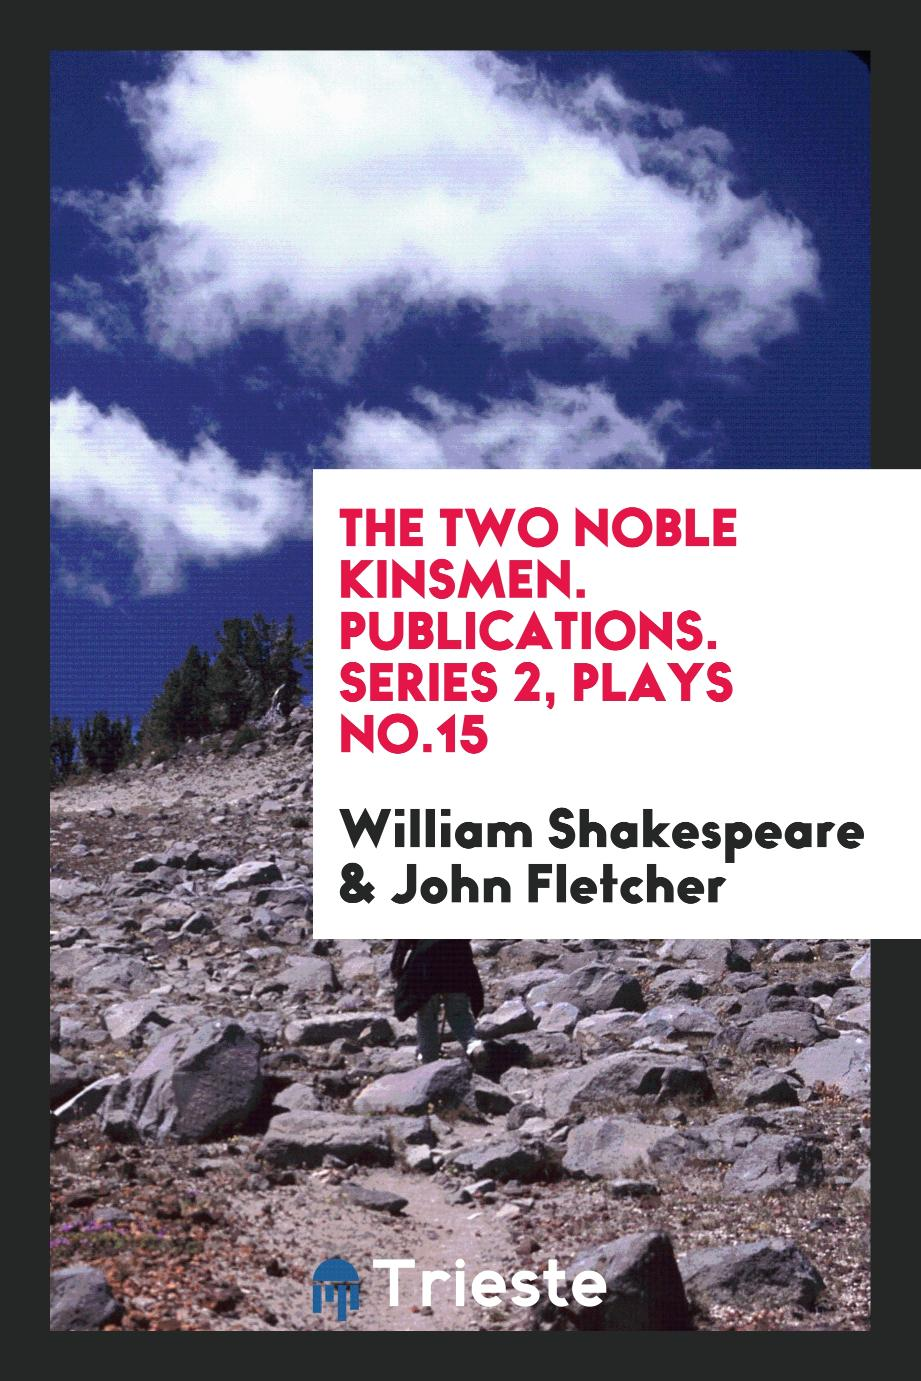 The two noble Kinsmen. Publications. Series 2, Plays No.15